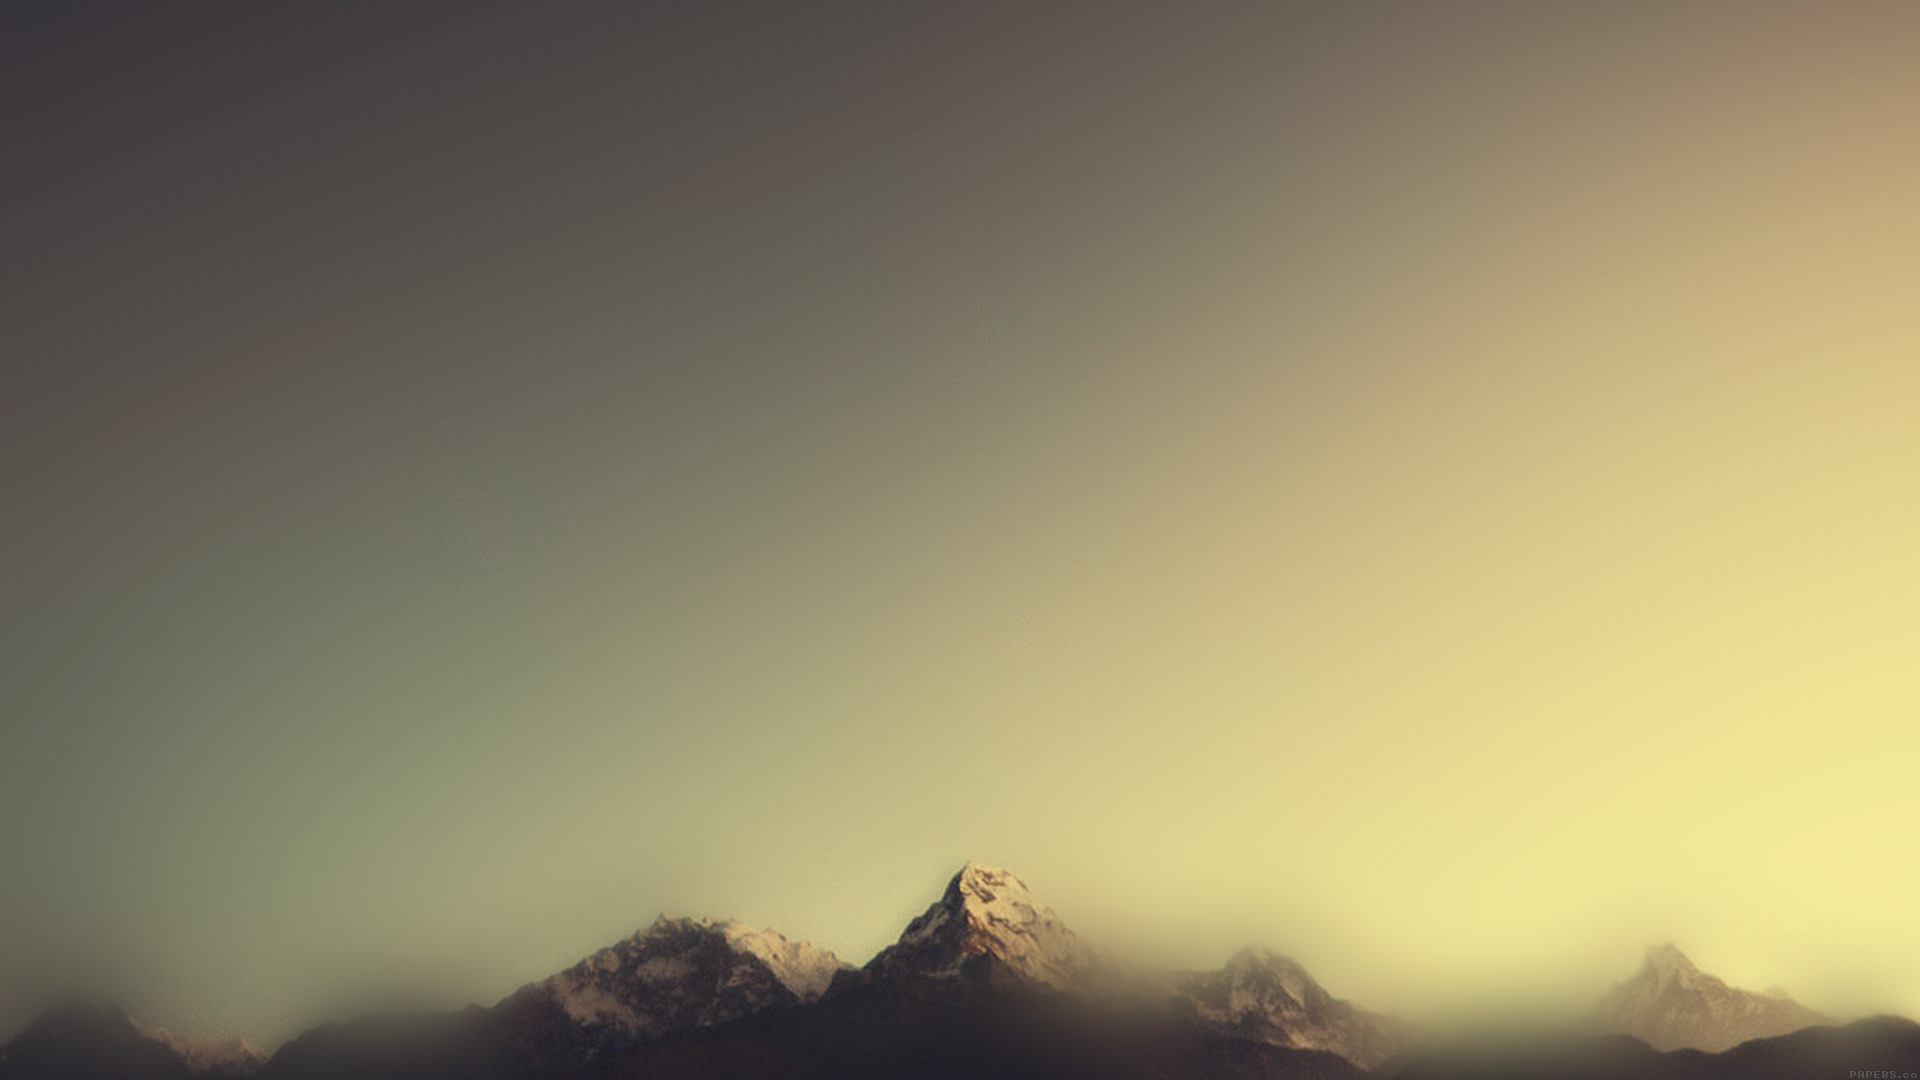 Cool Fall Wallpapers For Desktop Ml07 Mountain Blur Minimal Nature Papers Co